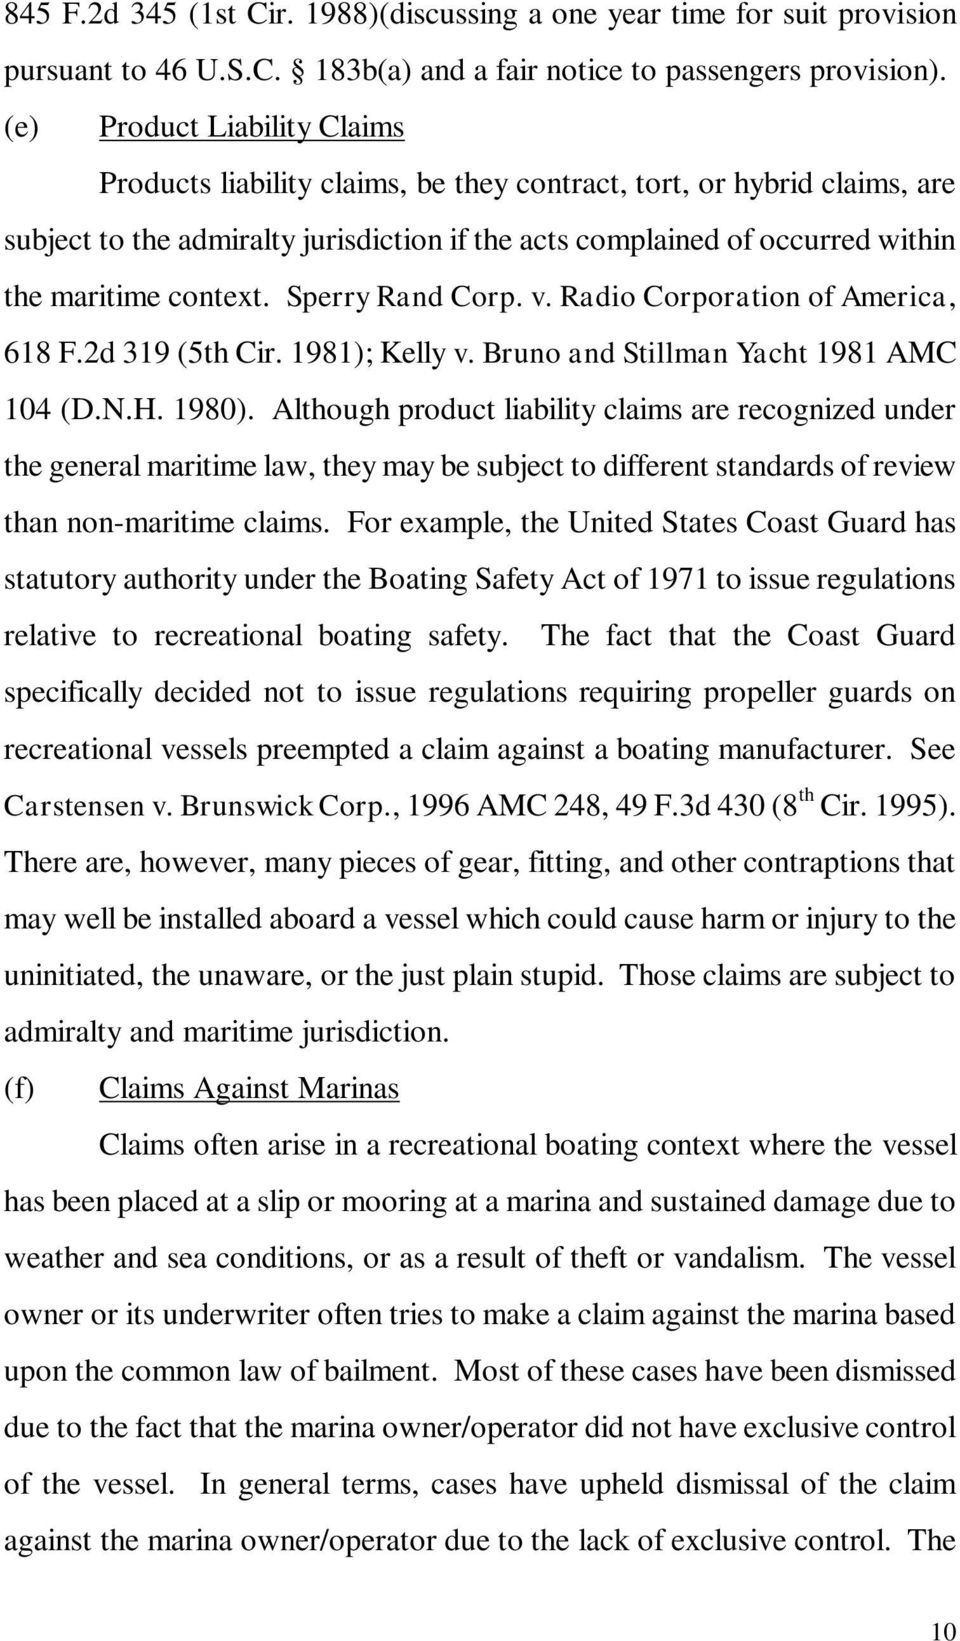 context. Sperry Rand Corp. v. Radio Corporation of America, 618 F.2d 319 (5th Cir. 1981); Kelly v. Bruno and Stillman Yacht 1981 AMC 104 (D.N.H. 1980).